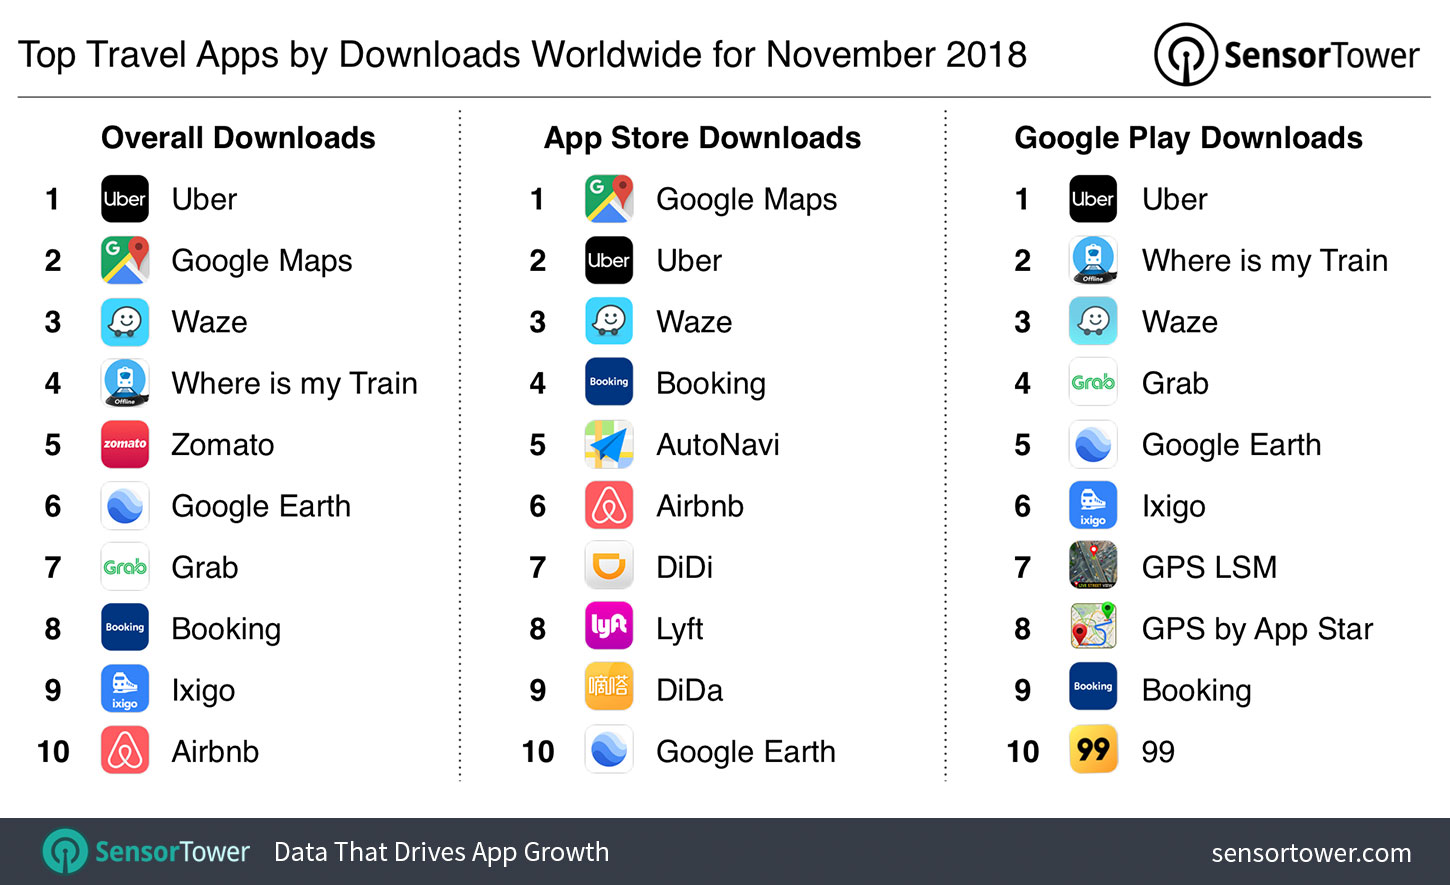 Top Travel Apps by Downloads Worldwide for November 2018